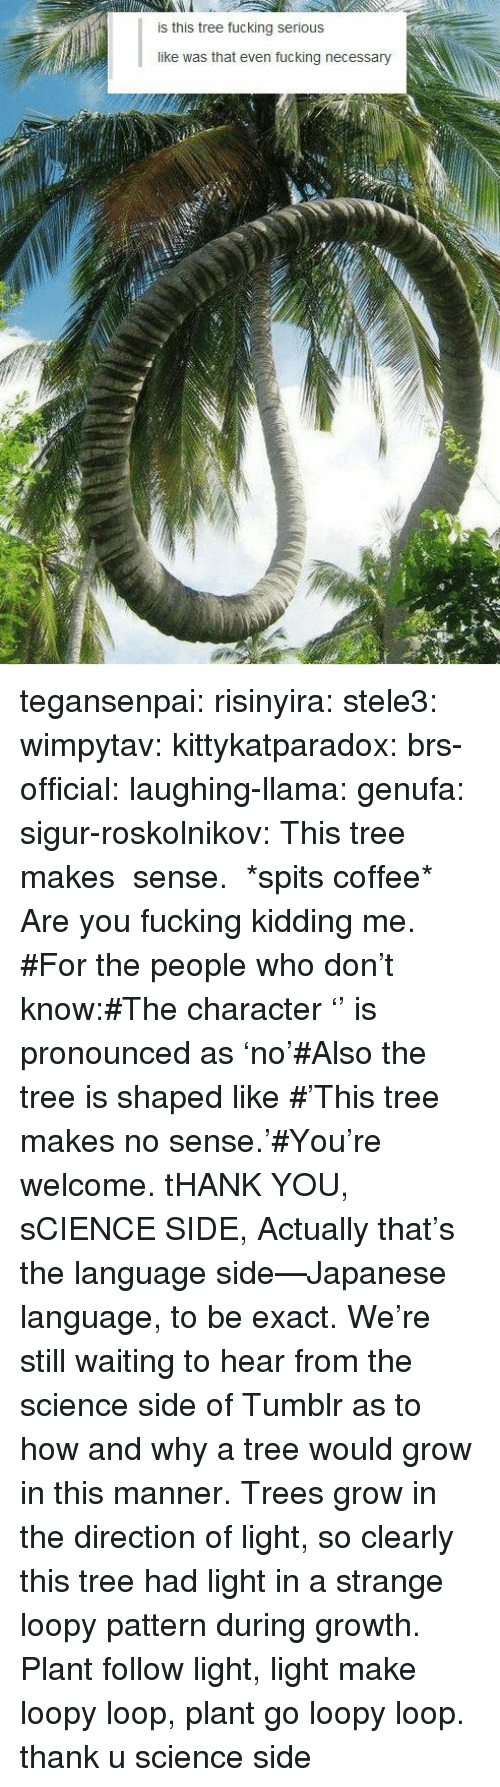 Are You Fucking Kidding: is this tree fucking serious  like was that even fucking necessary tegansenpai: risinyira:  stele3:  wimpytav:  kittykatparadox:  brs-official:  laughing-llama:  genufa:   sigur-roskolnikov:   This tree makes の sense.   *spits coffee*    Are you fucking kidding me.  #For the people who don't know:#The character 'の' is pronounced as 'no'#Also the tree is shaped like の#'This tree makes no sense.'#You're welcome.  tHANK YOU, sCIENCE SIDE,  Actually that's the language side—Japanese language, to be exact. We're still waiting to hear from the science side of Tumblr as to how and why a tree would grow in this manner.  Trees grow in the direction of light, so clearly this tree had light in a strange loopy pattern during growth. Plant follow light, light make loopy loop, plant go loopy loop.  thank u science side